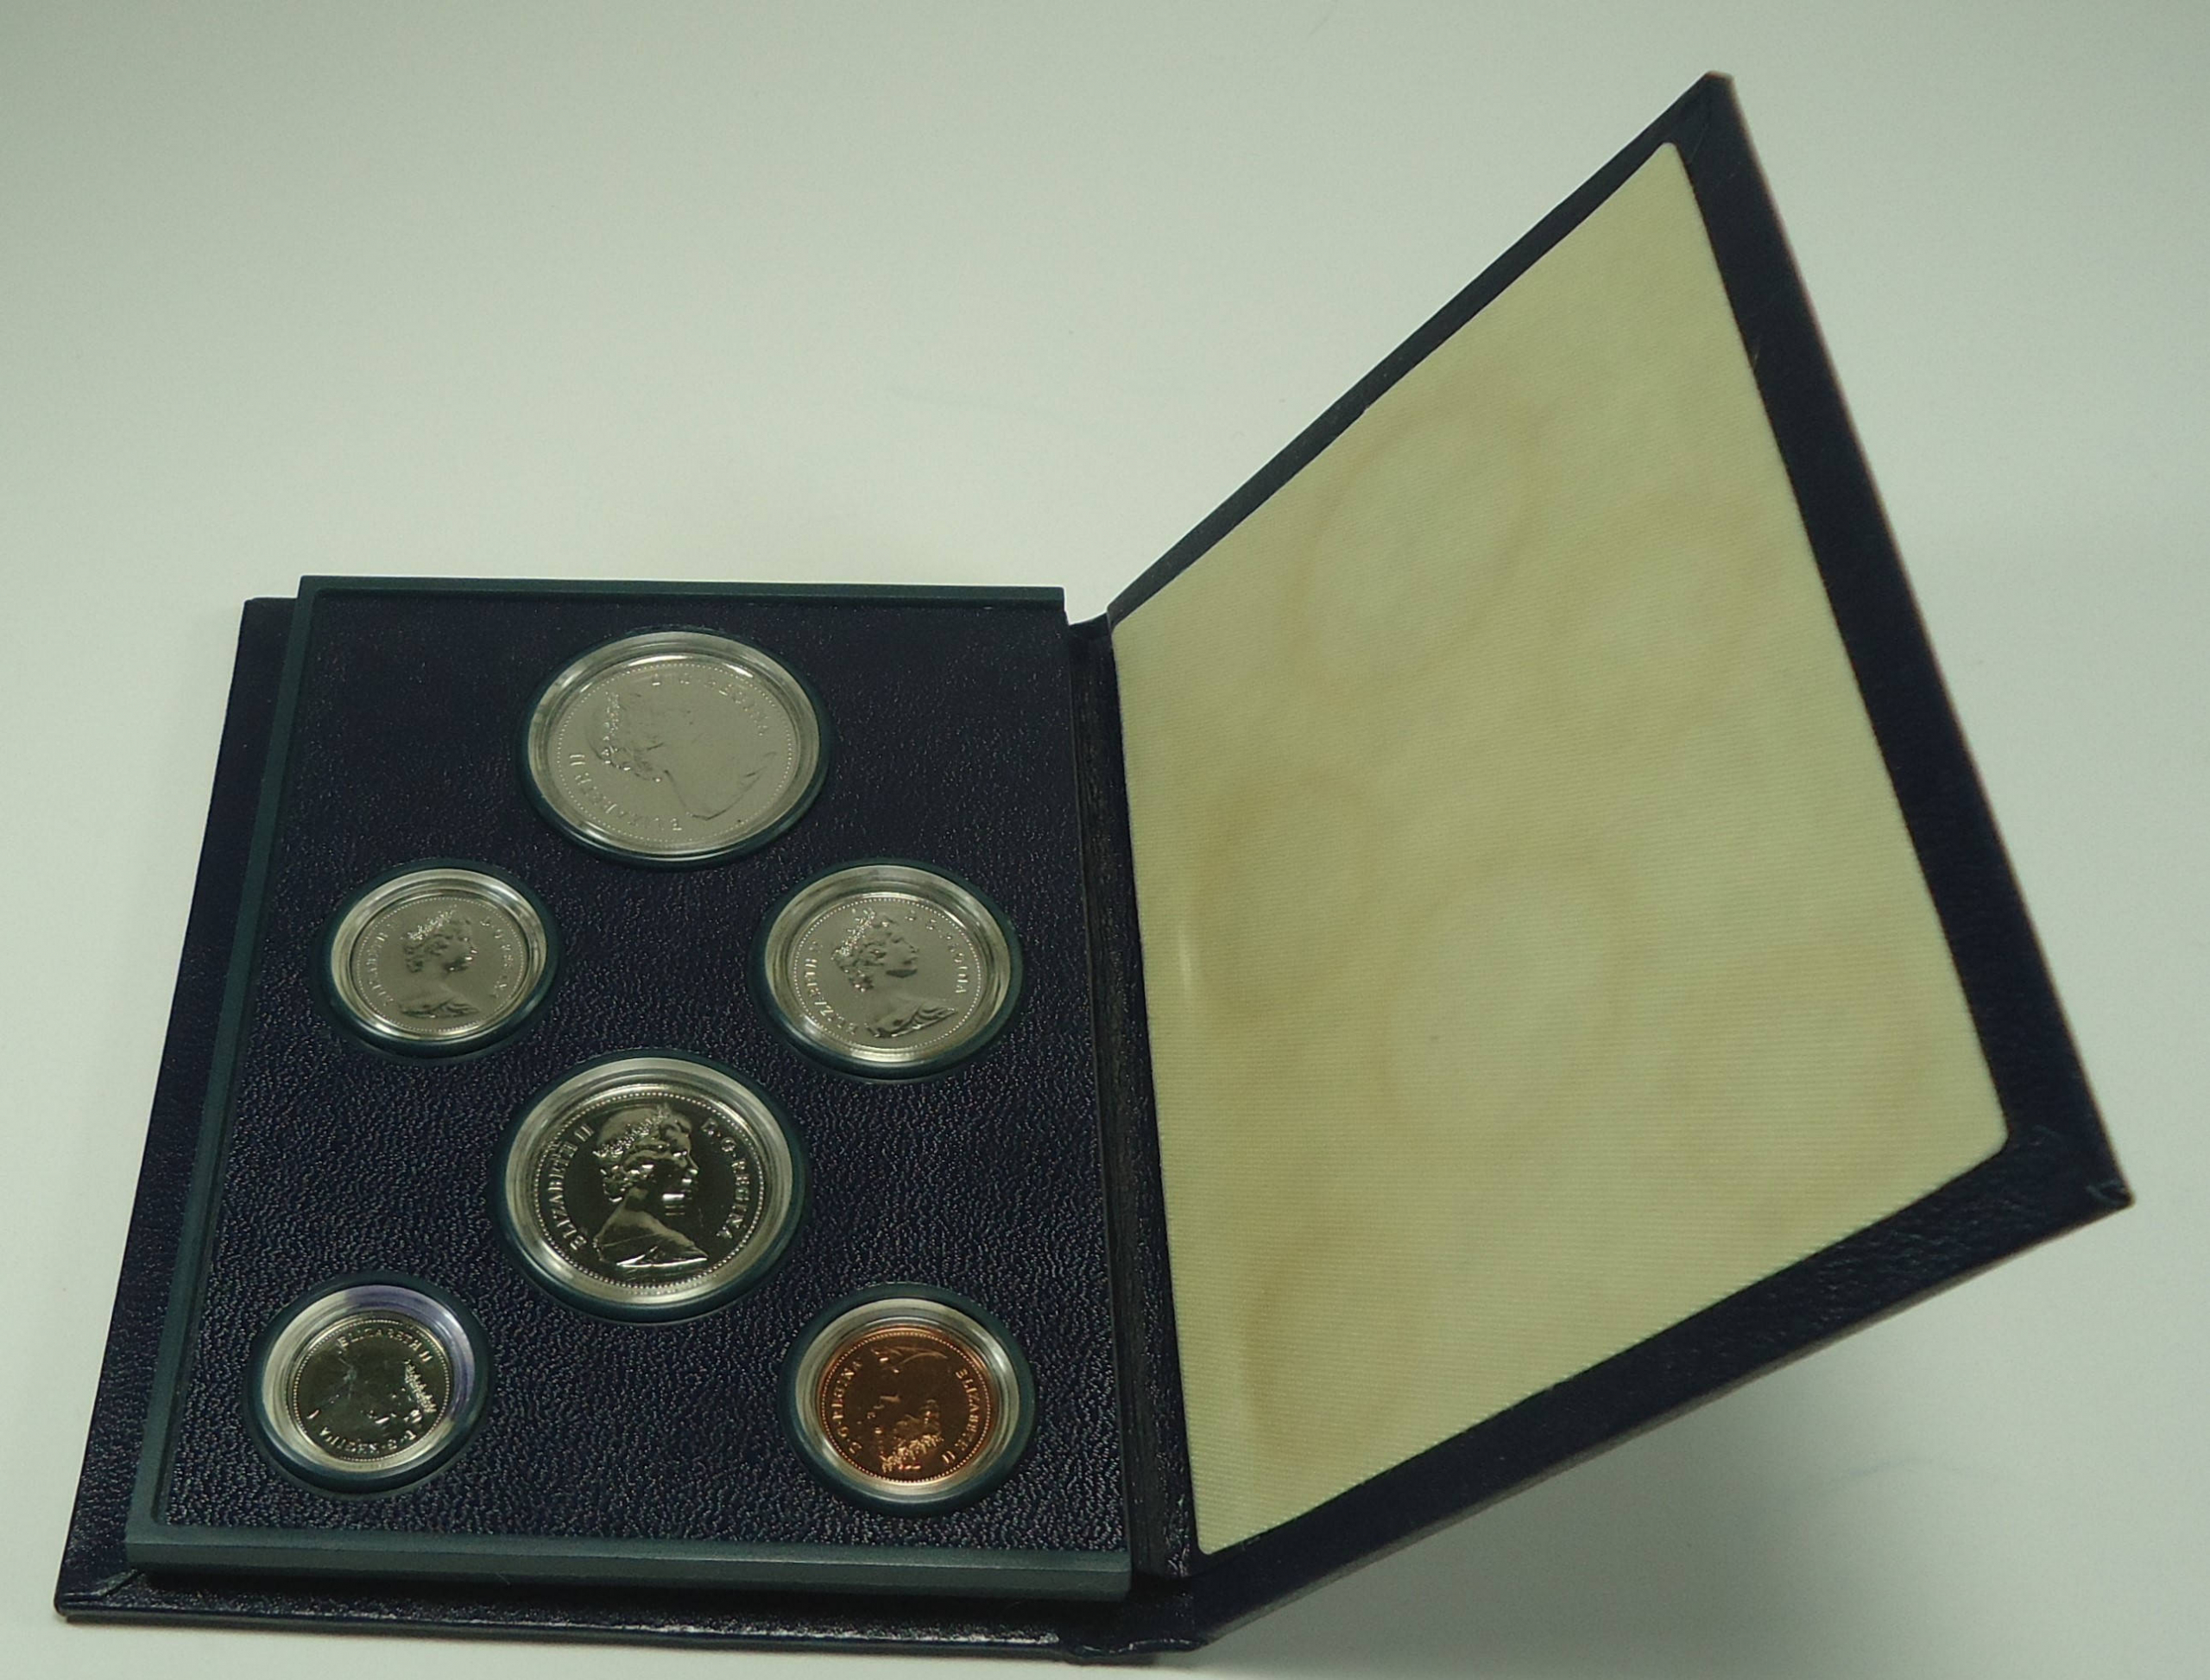 Coat of Arms Uncirculated 1981-50-cents RCM Specimen